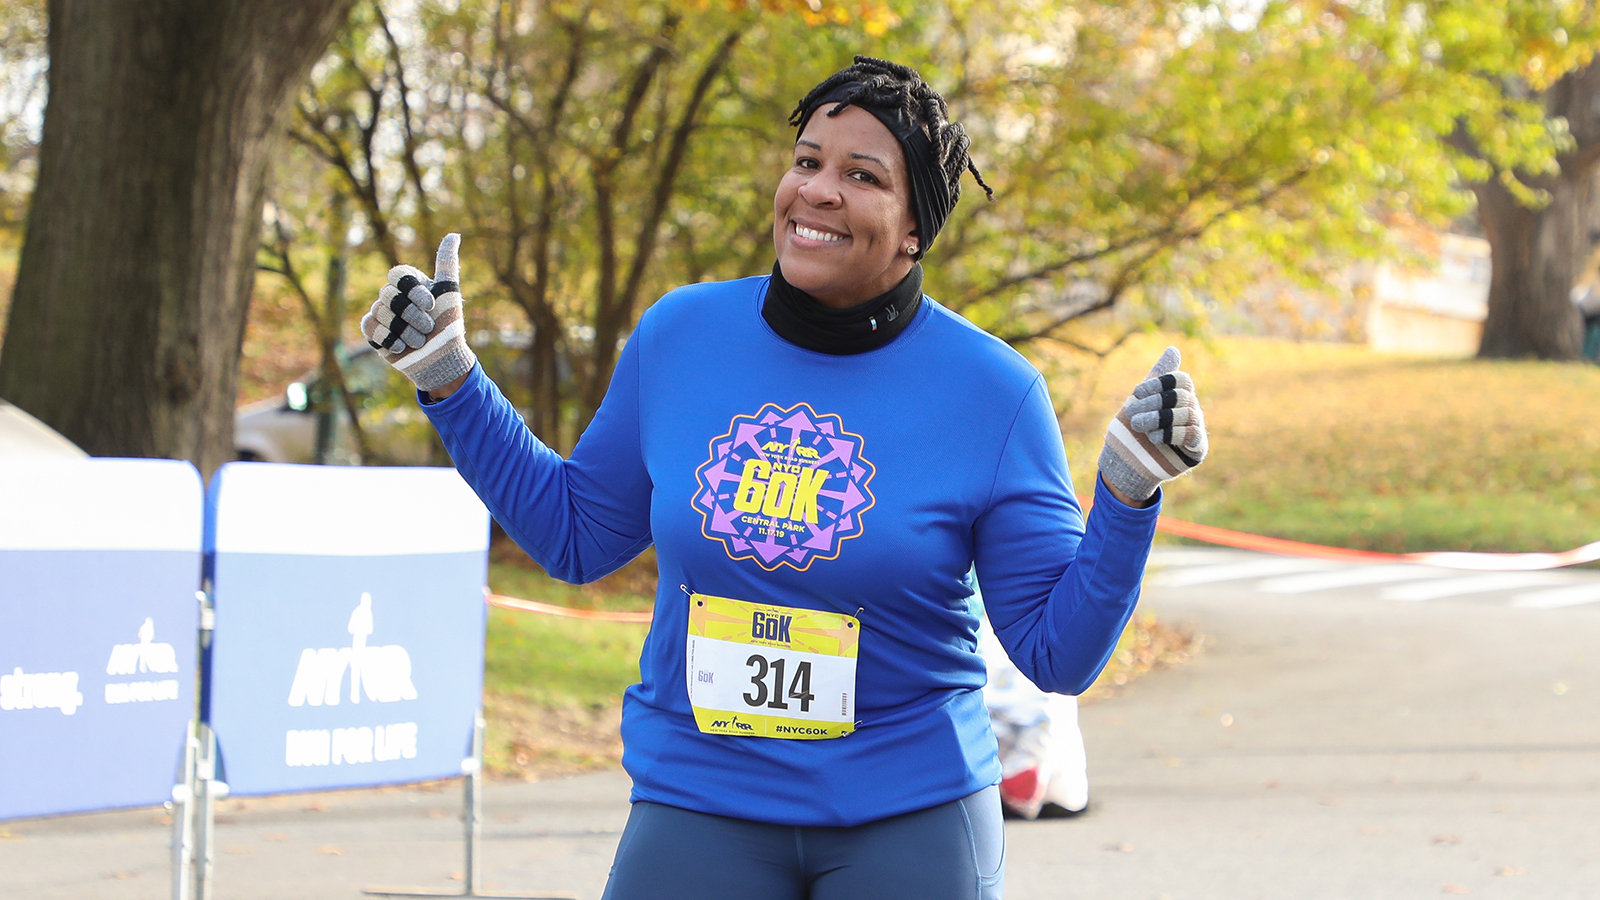 A woman running the NYRR 60K smiling during the race